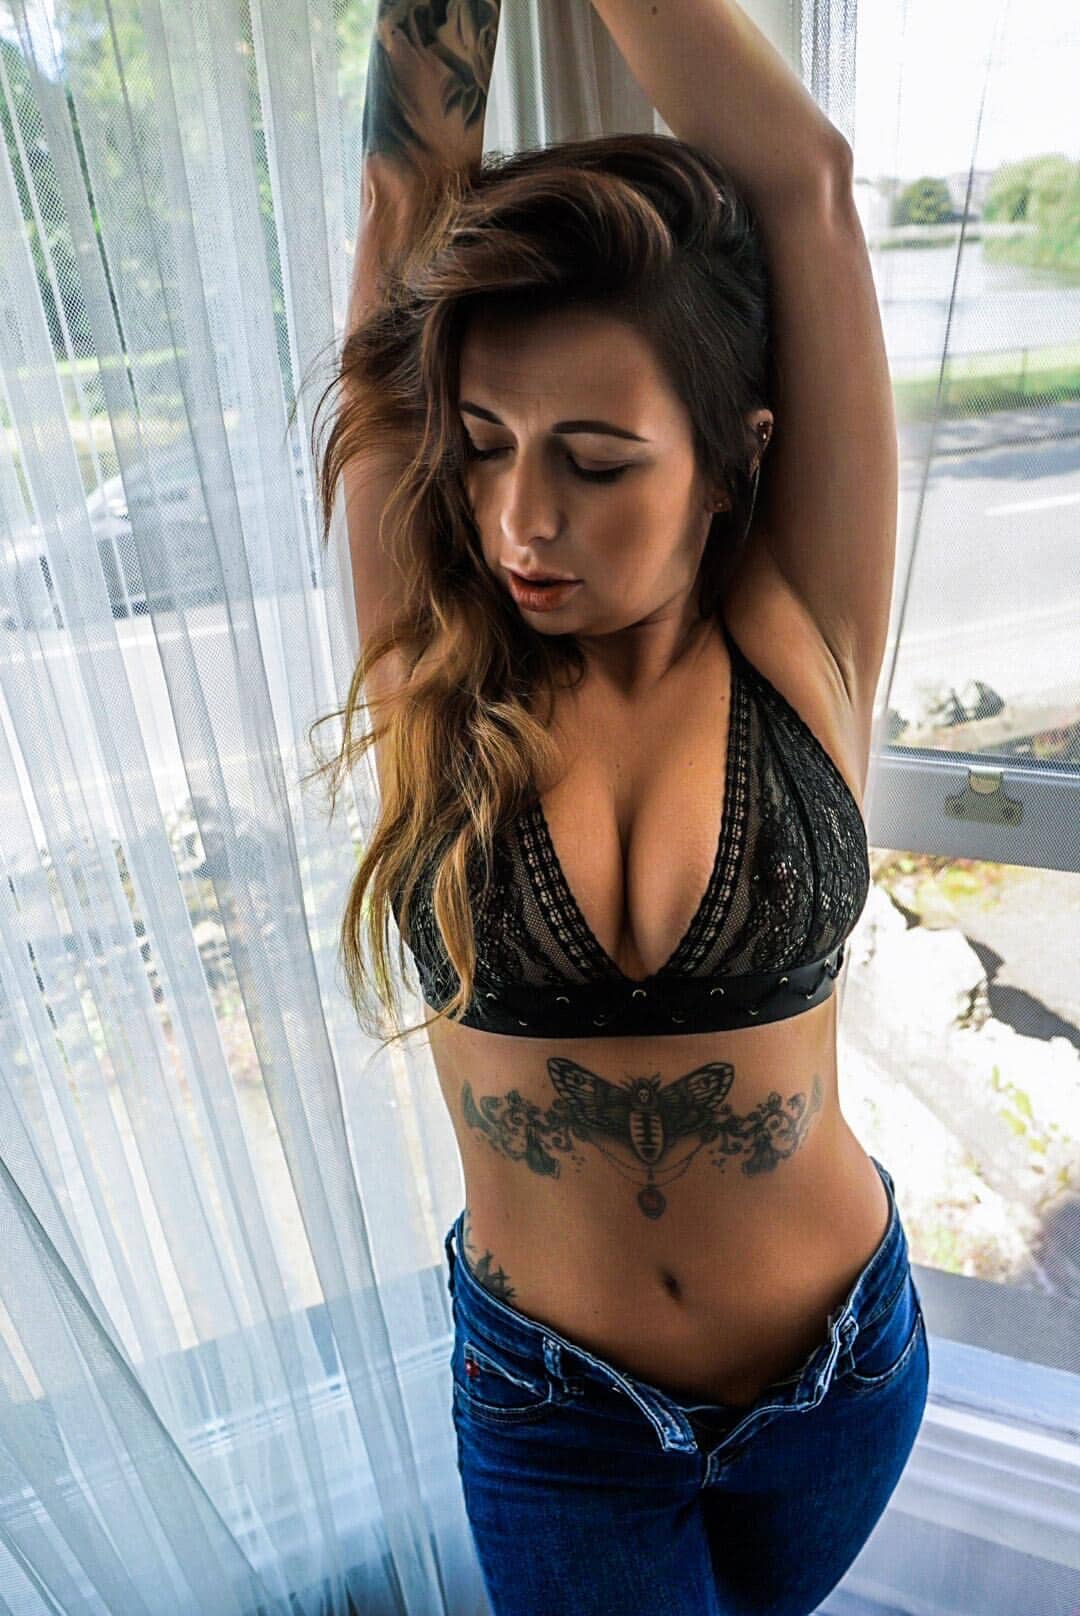 Beautiful tattooed model Anka Dawid @freakin.juicy wearing a black bra holding her arms up showing het fit mature body and massive cleavage